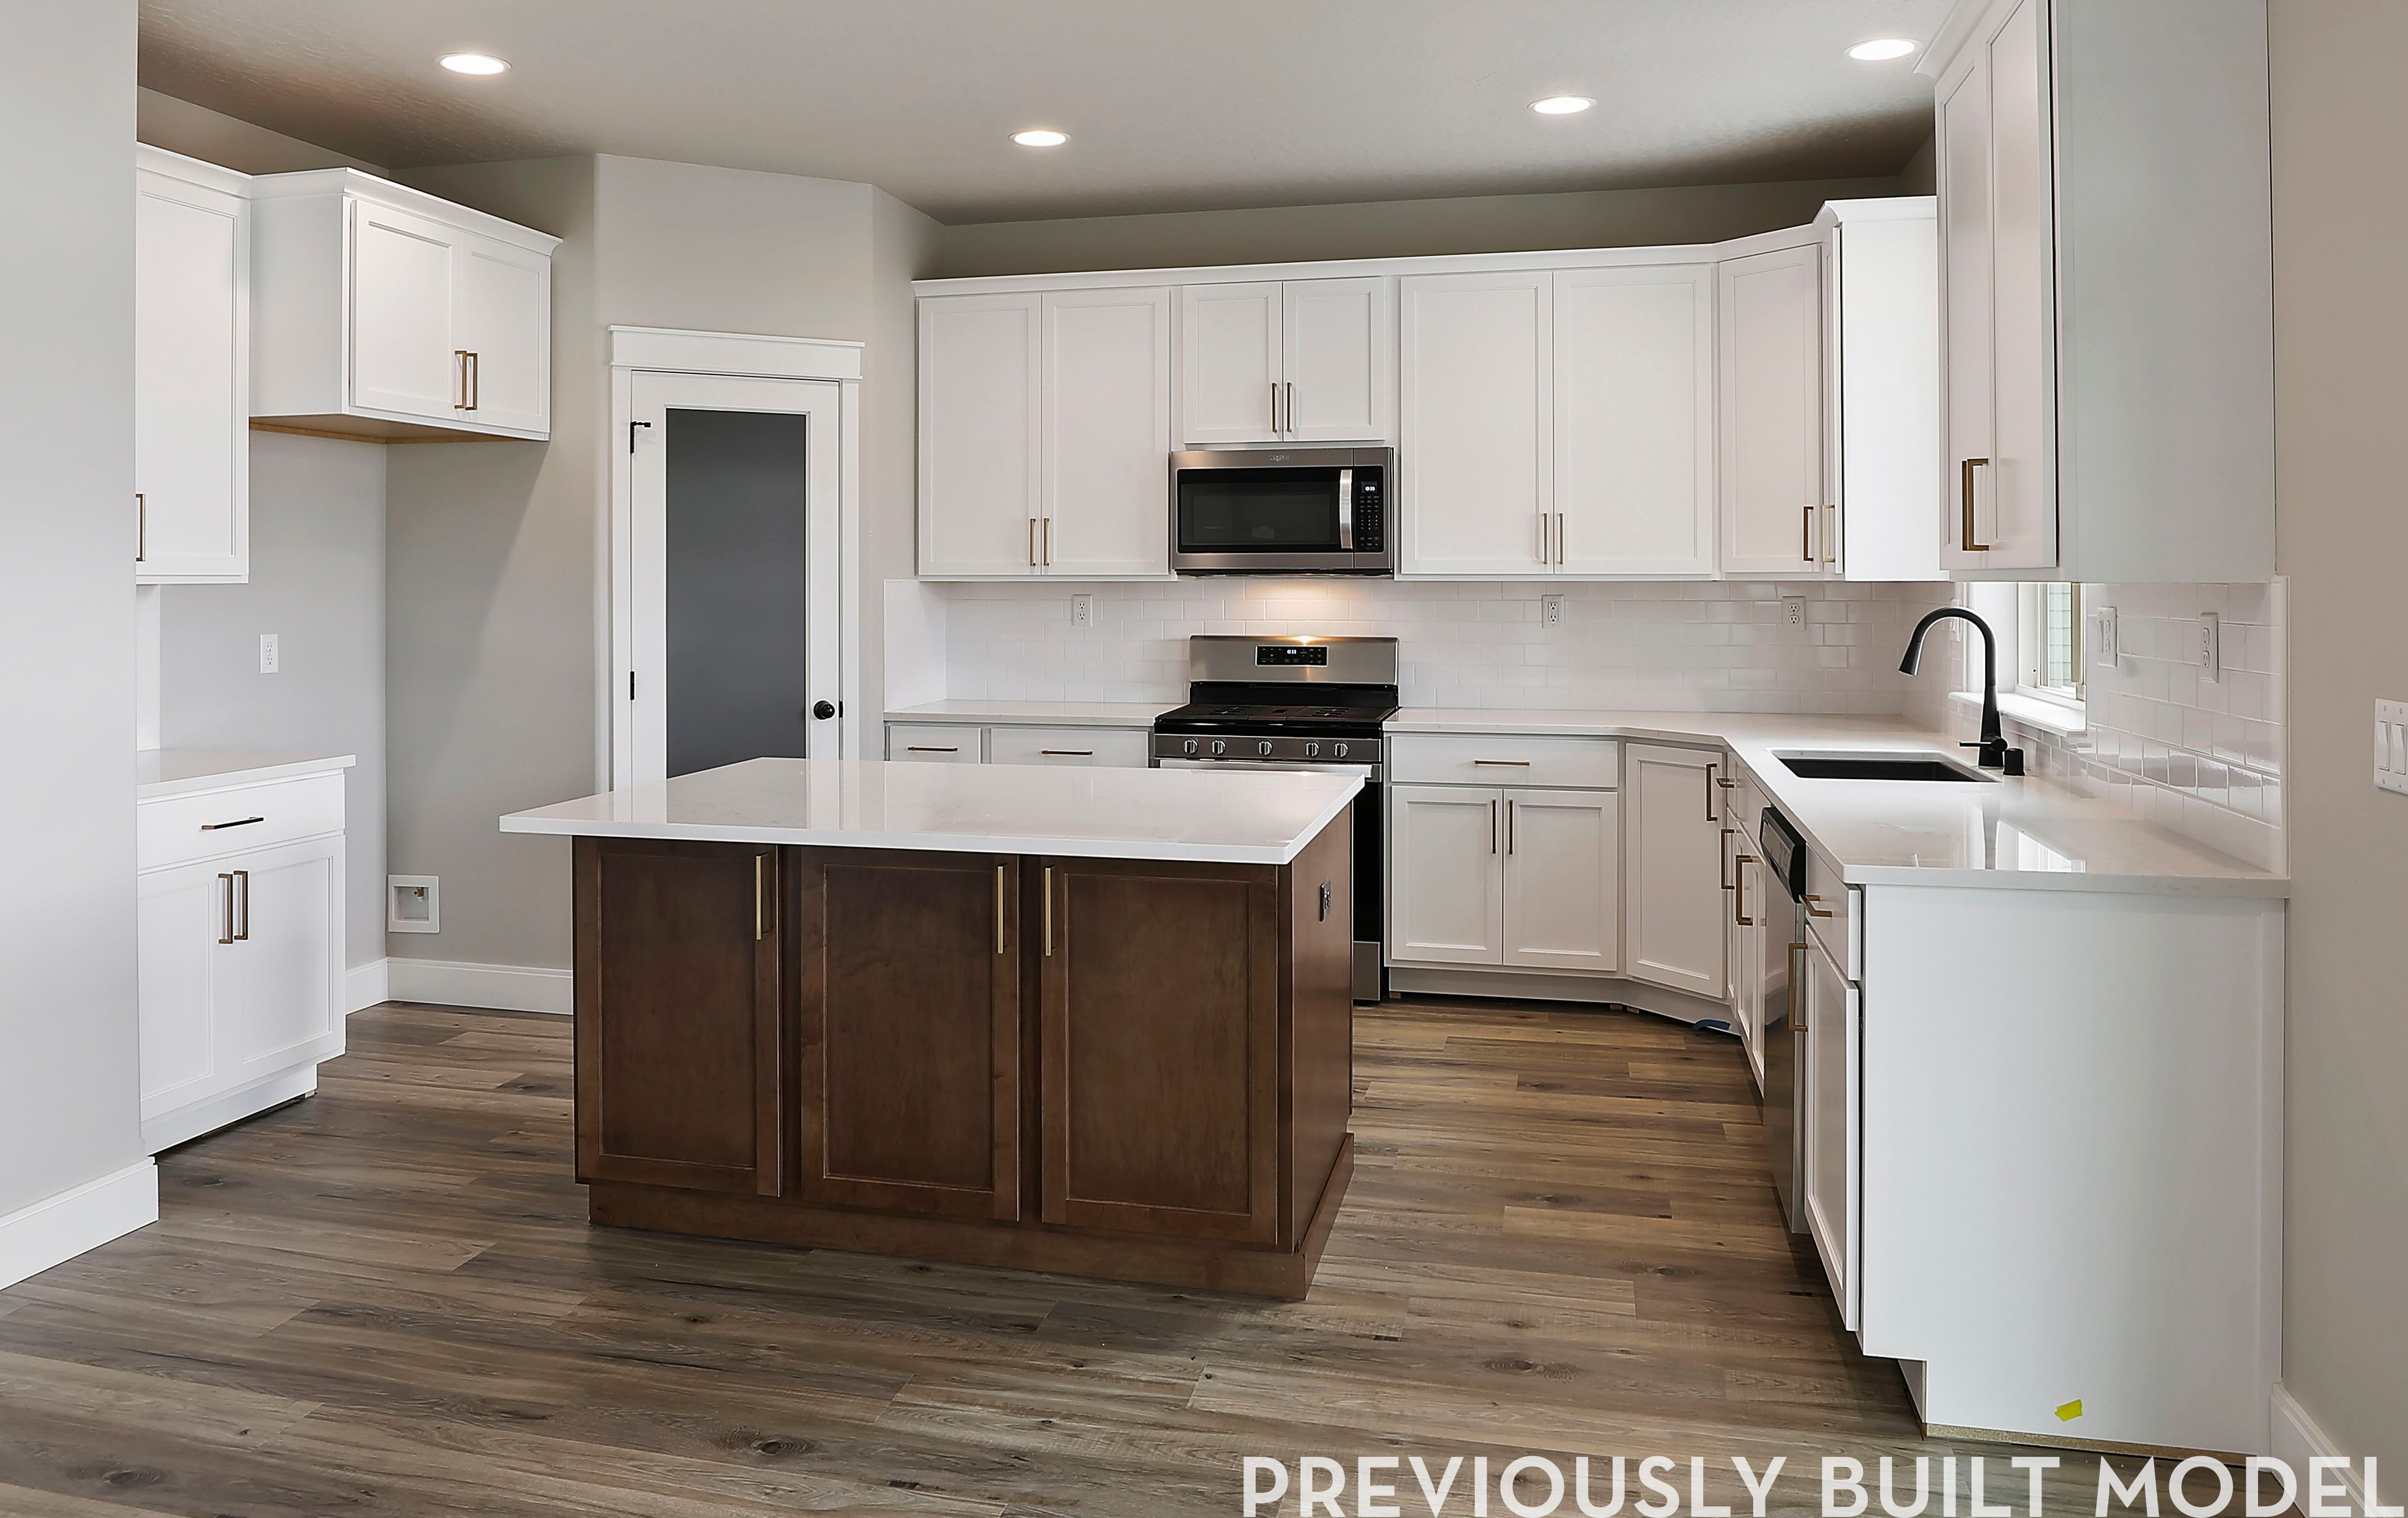 Kitchen featured in The Safire By RYN Built Homes in Spokane-Couer d Alene, WA